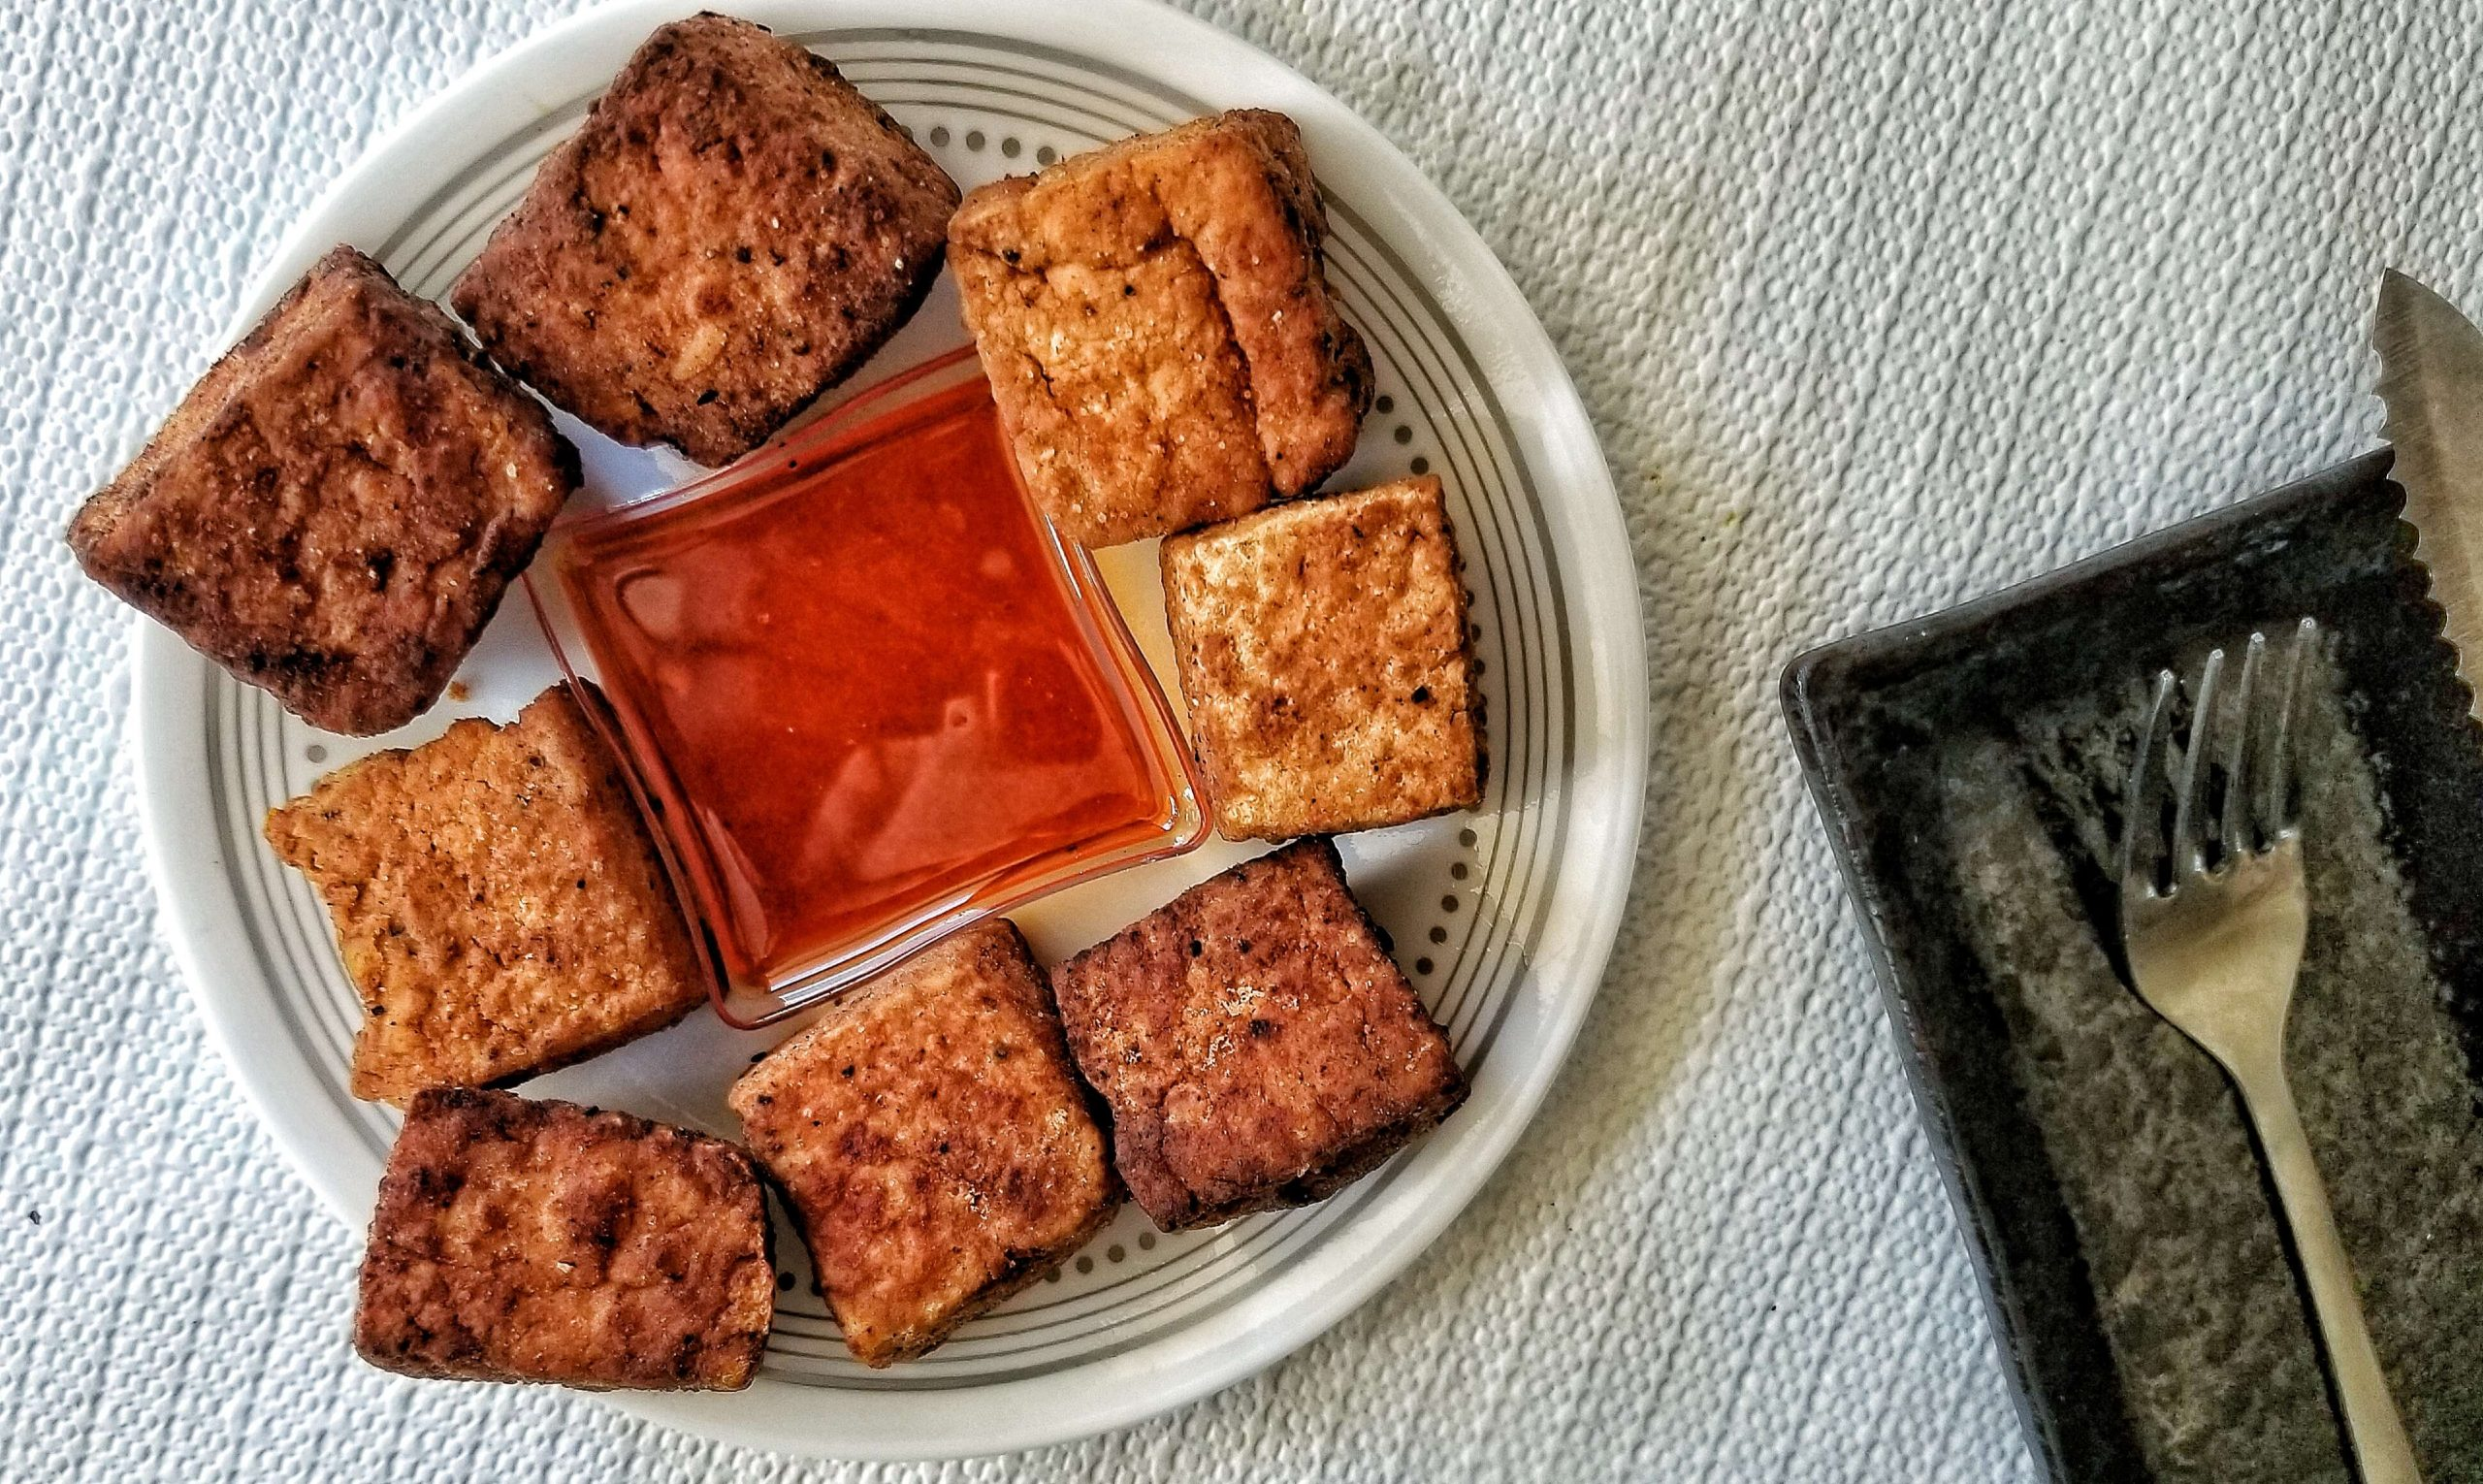 7 Things To Know About Frozen Tofu